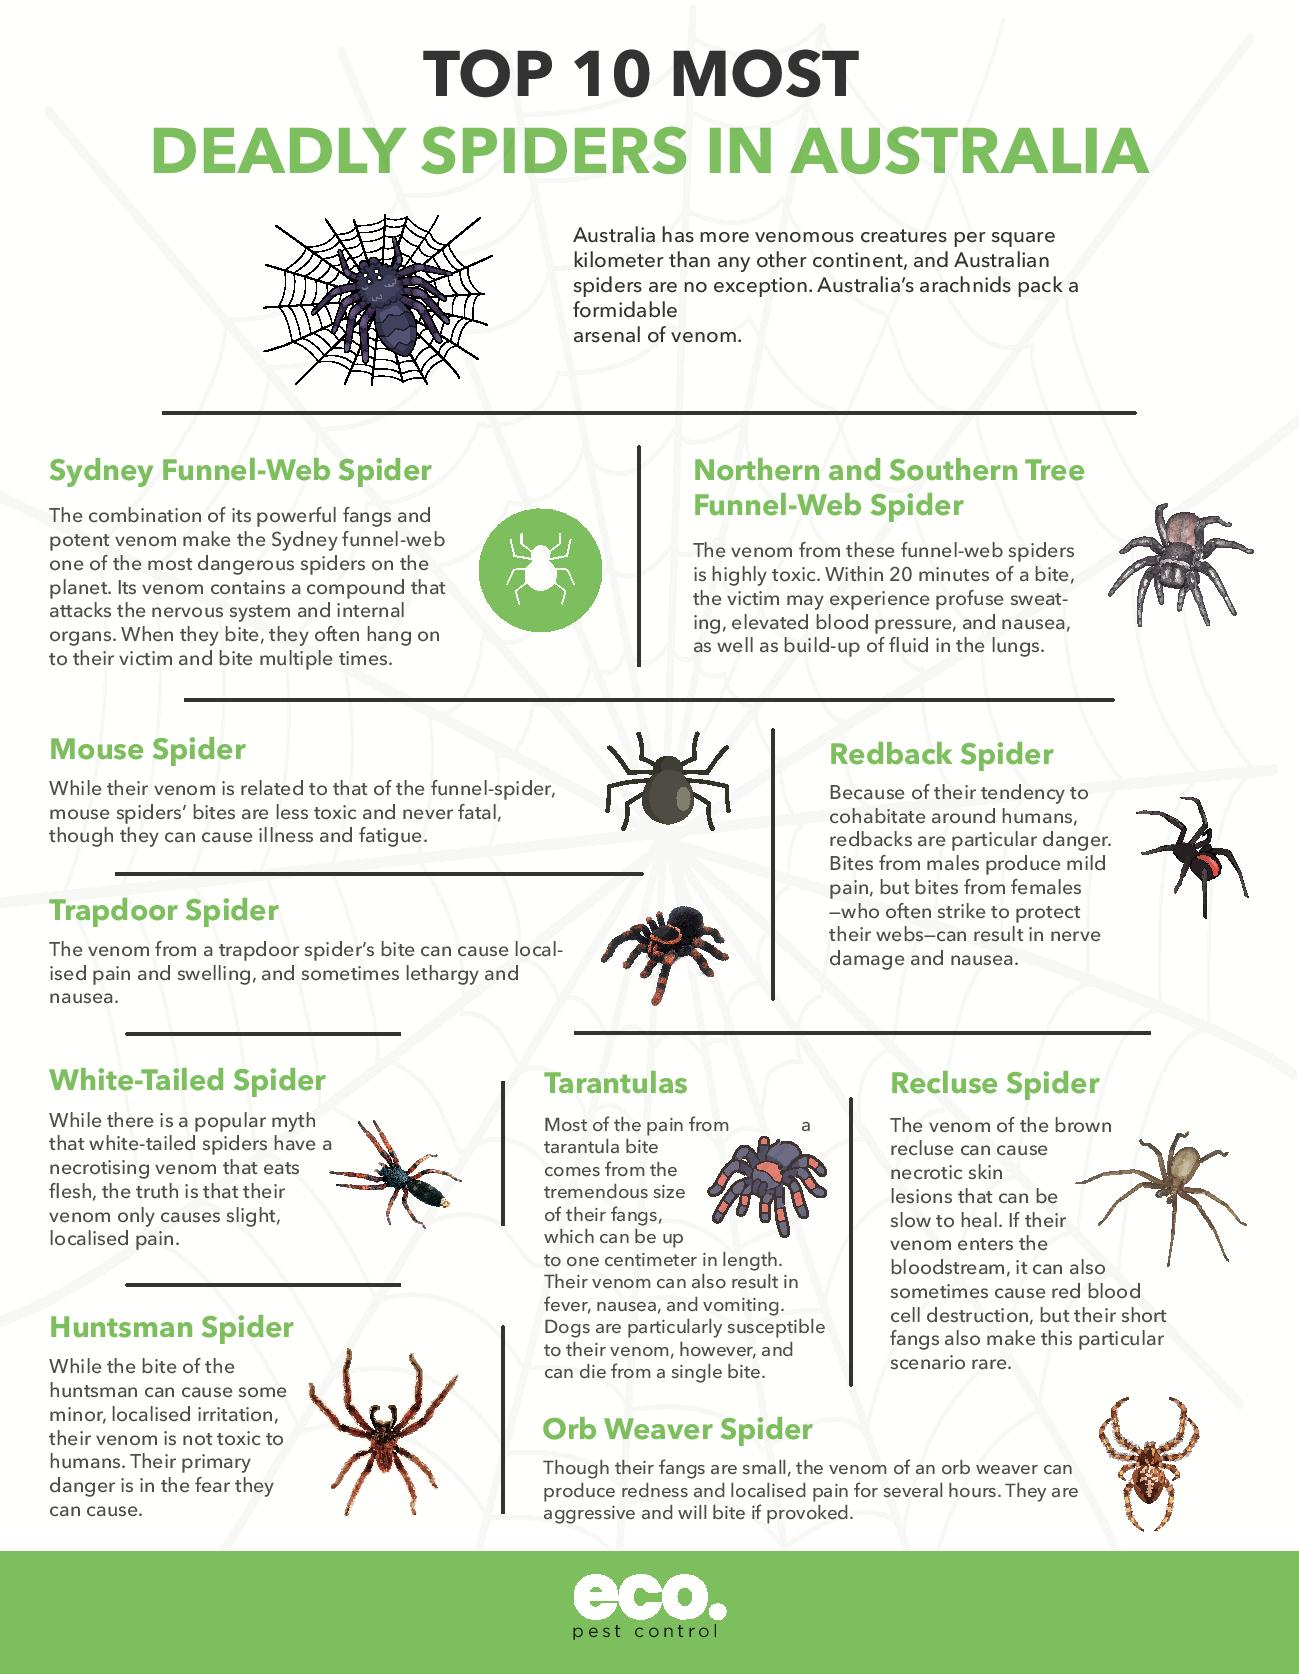 Top 10 Most Deadly Spiders in Australia - Infographic